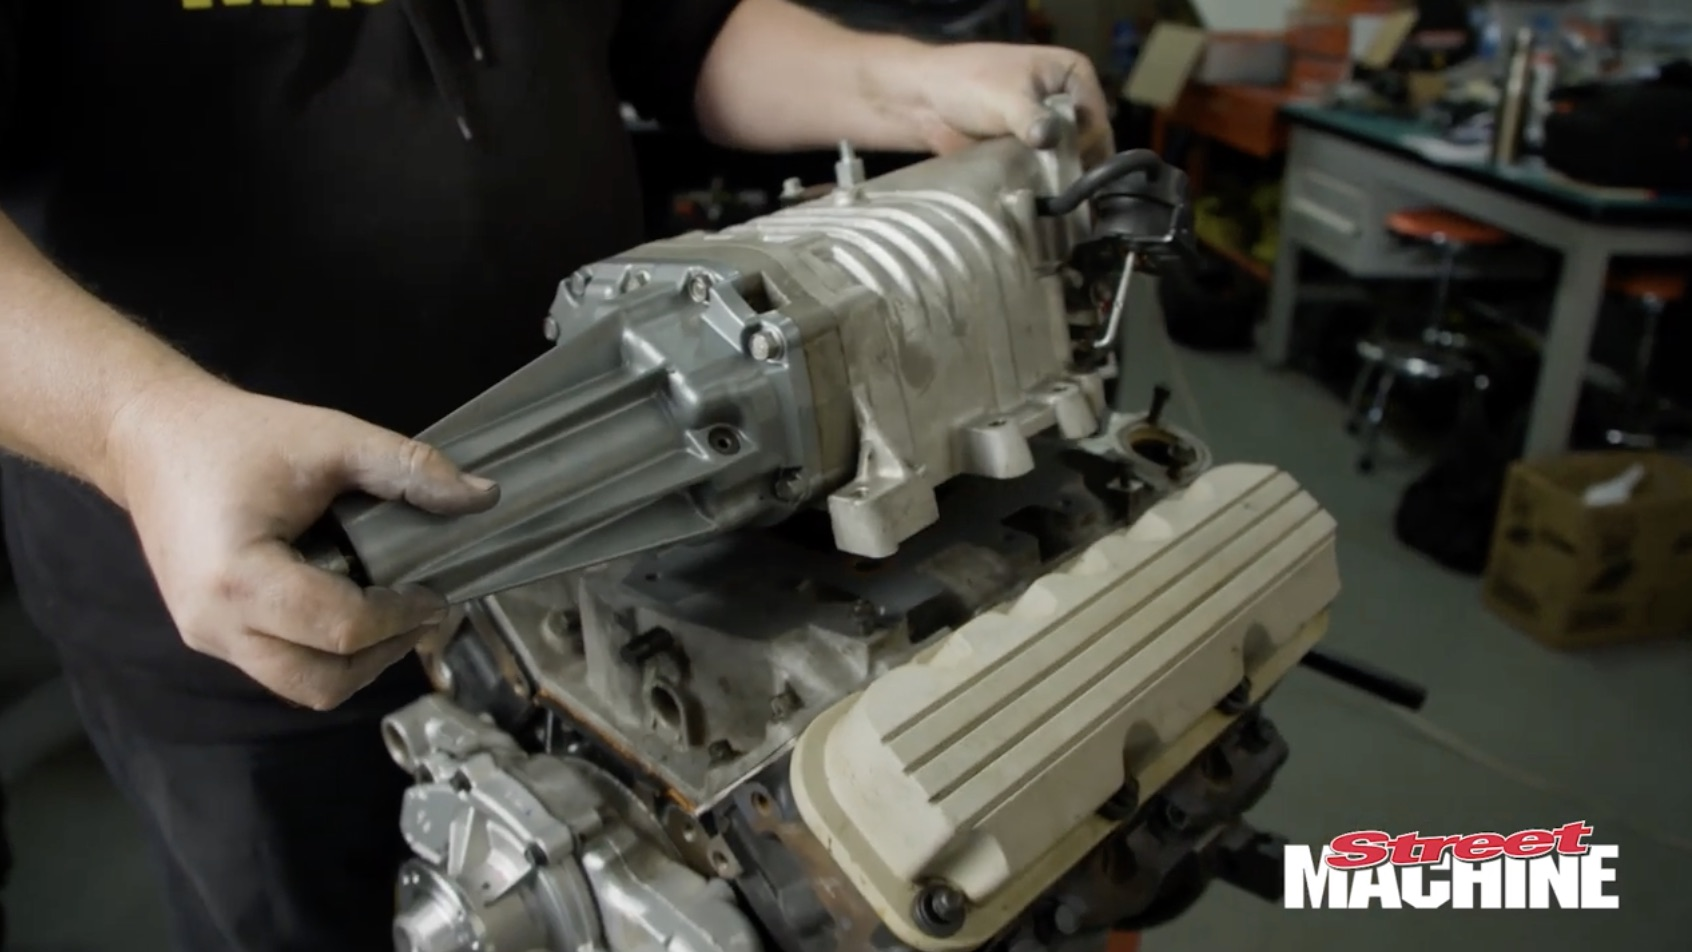 Buick V6 Build Part 2: The Upper End And The Party Piece On Top!